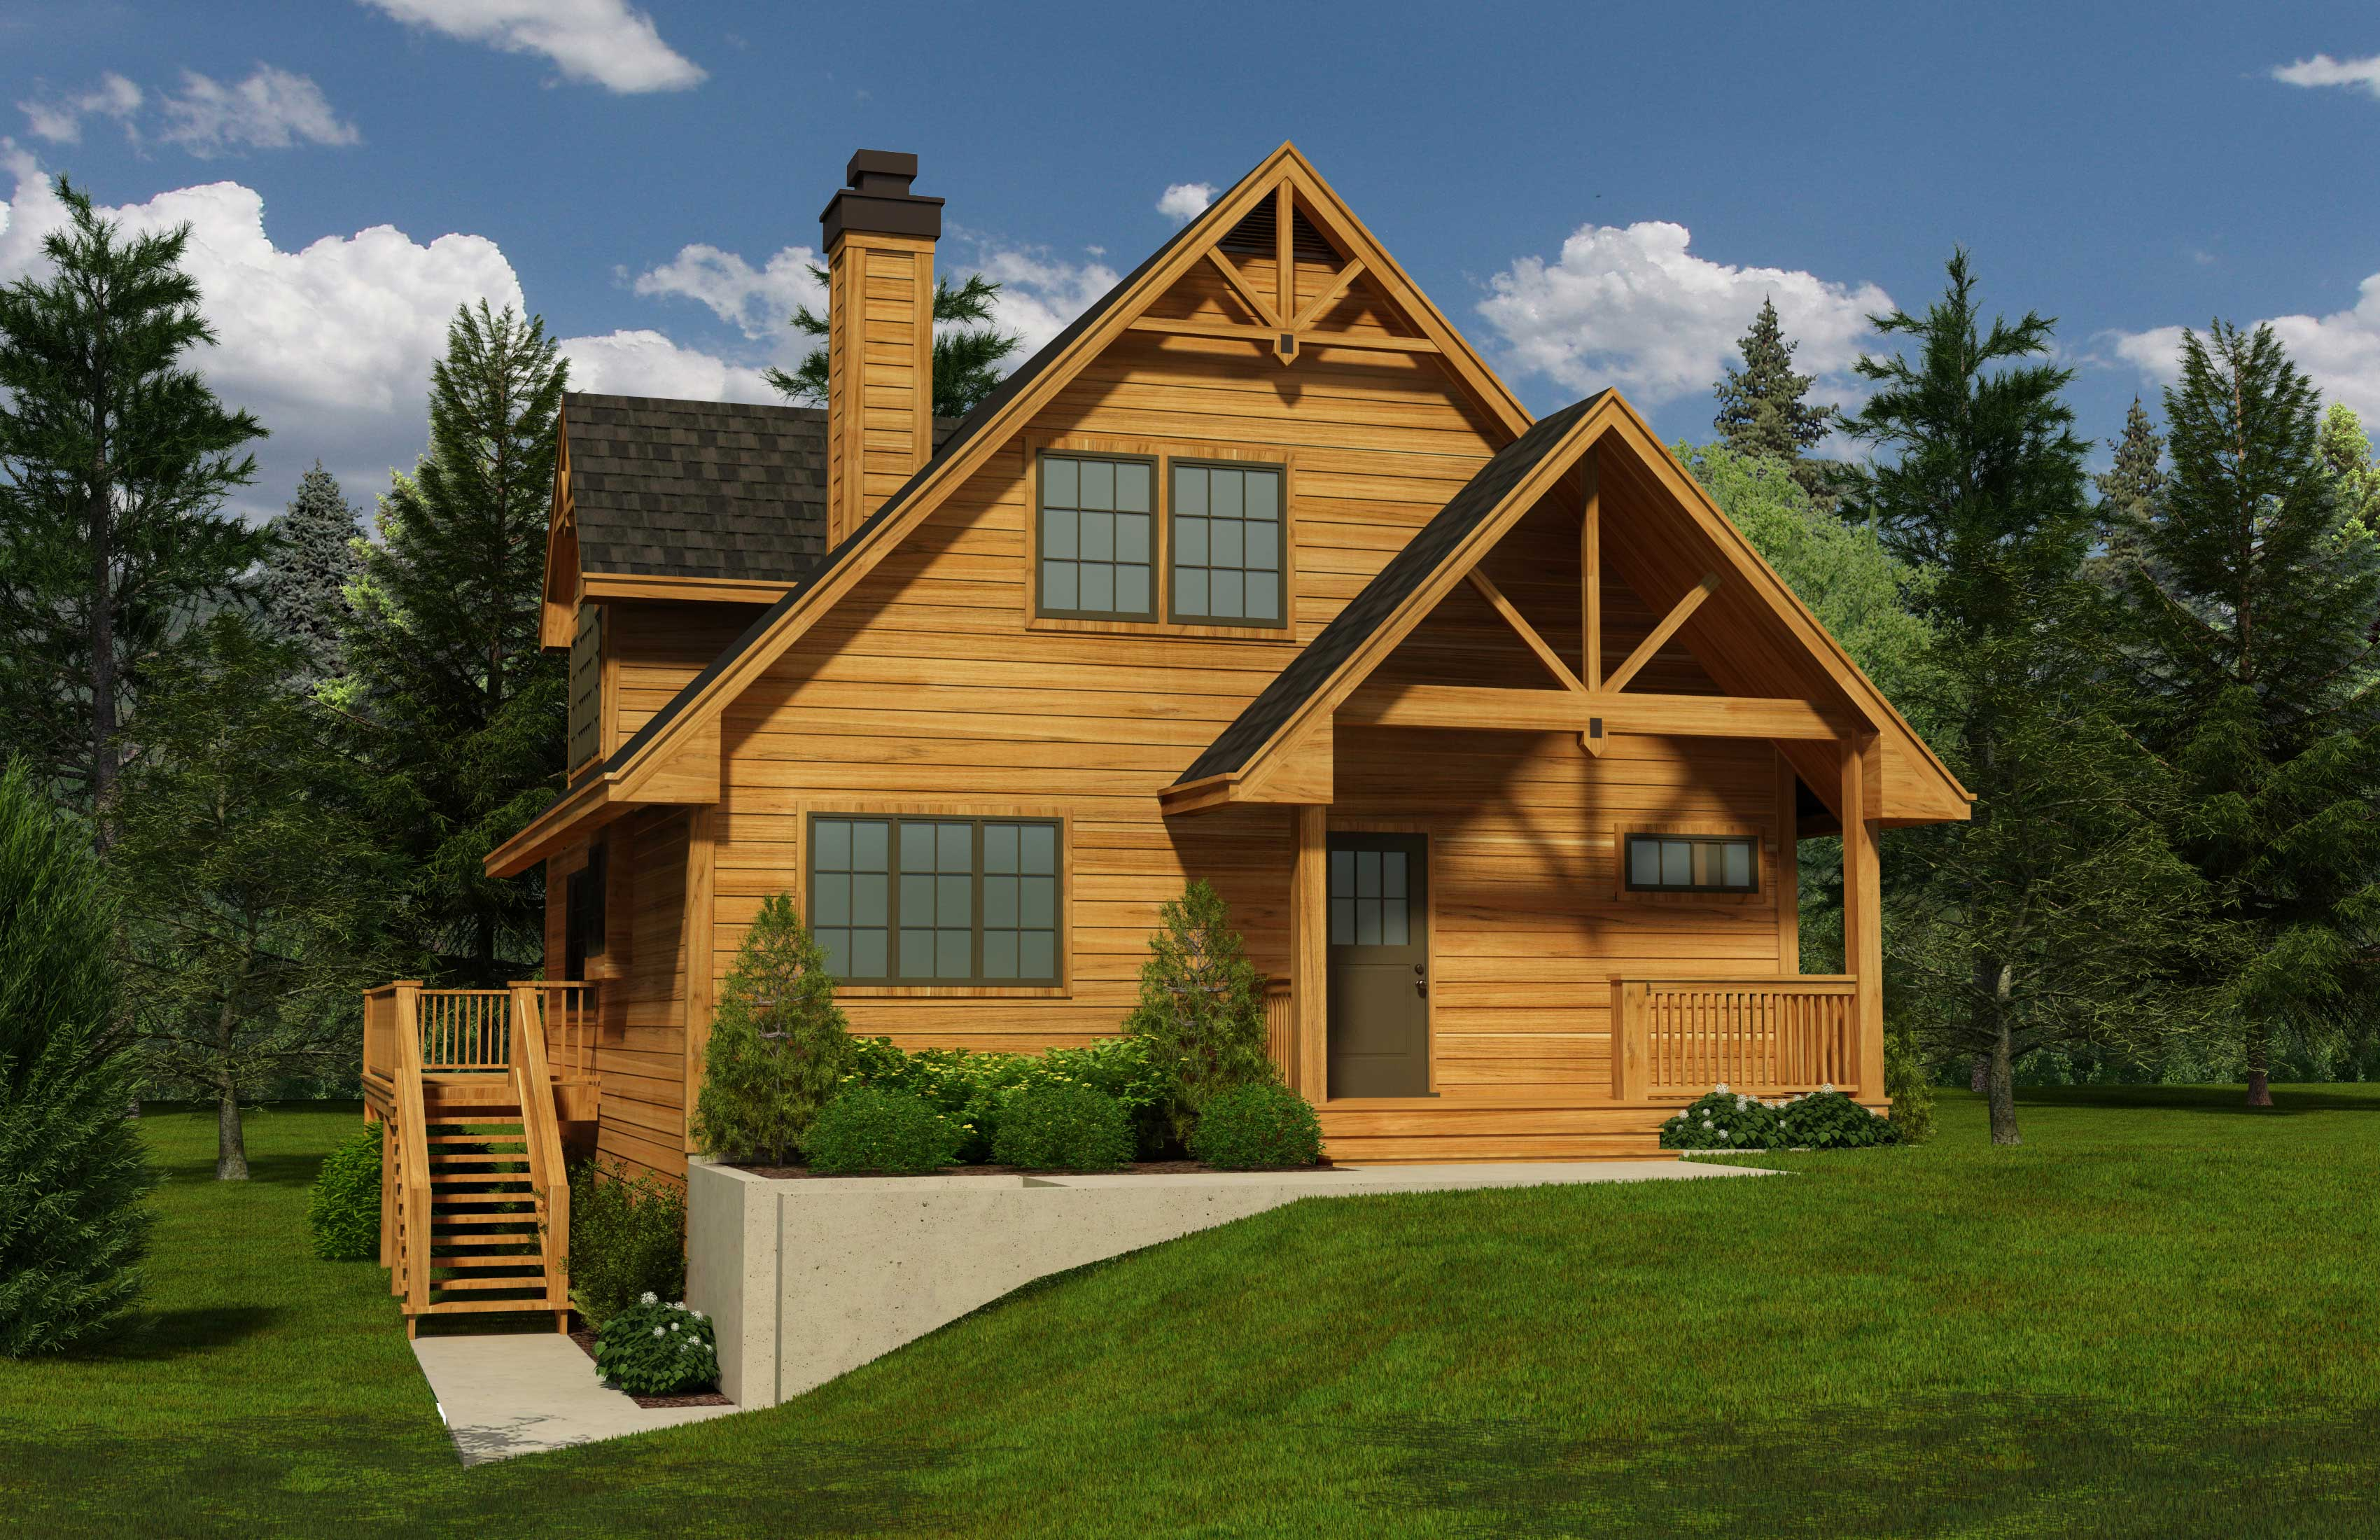 Log abin House Plans - Home Design 1741 - ^